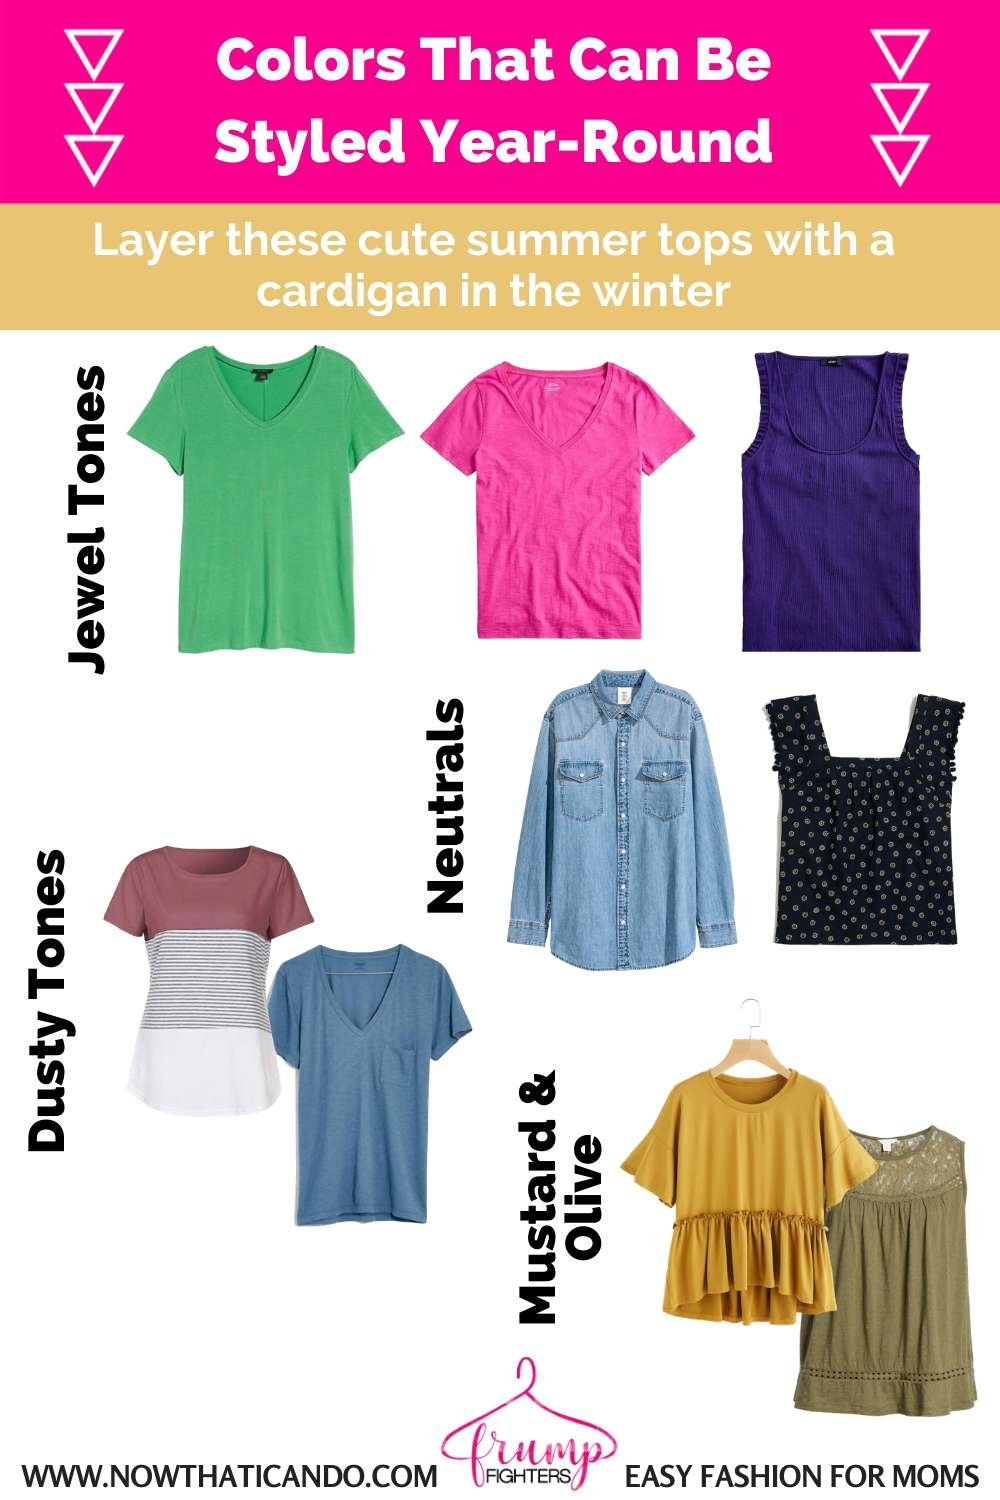 How to make the most of your existing wardrobe - Colors that work year round in all seasons to create a versatile best color scheme palette.